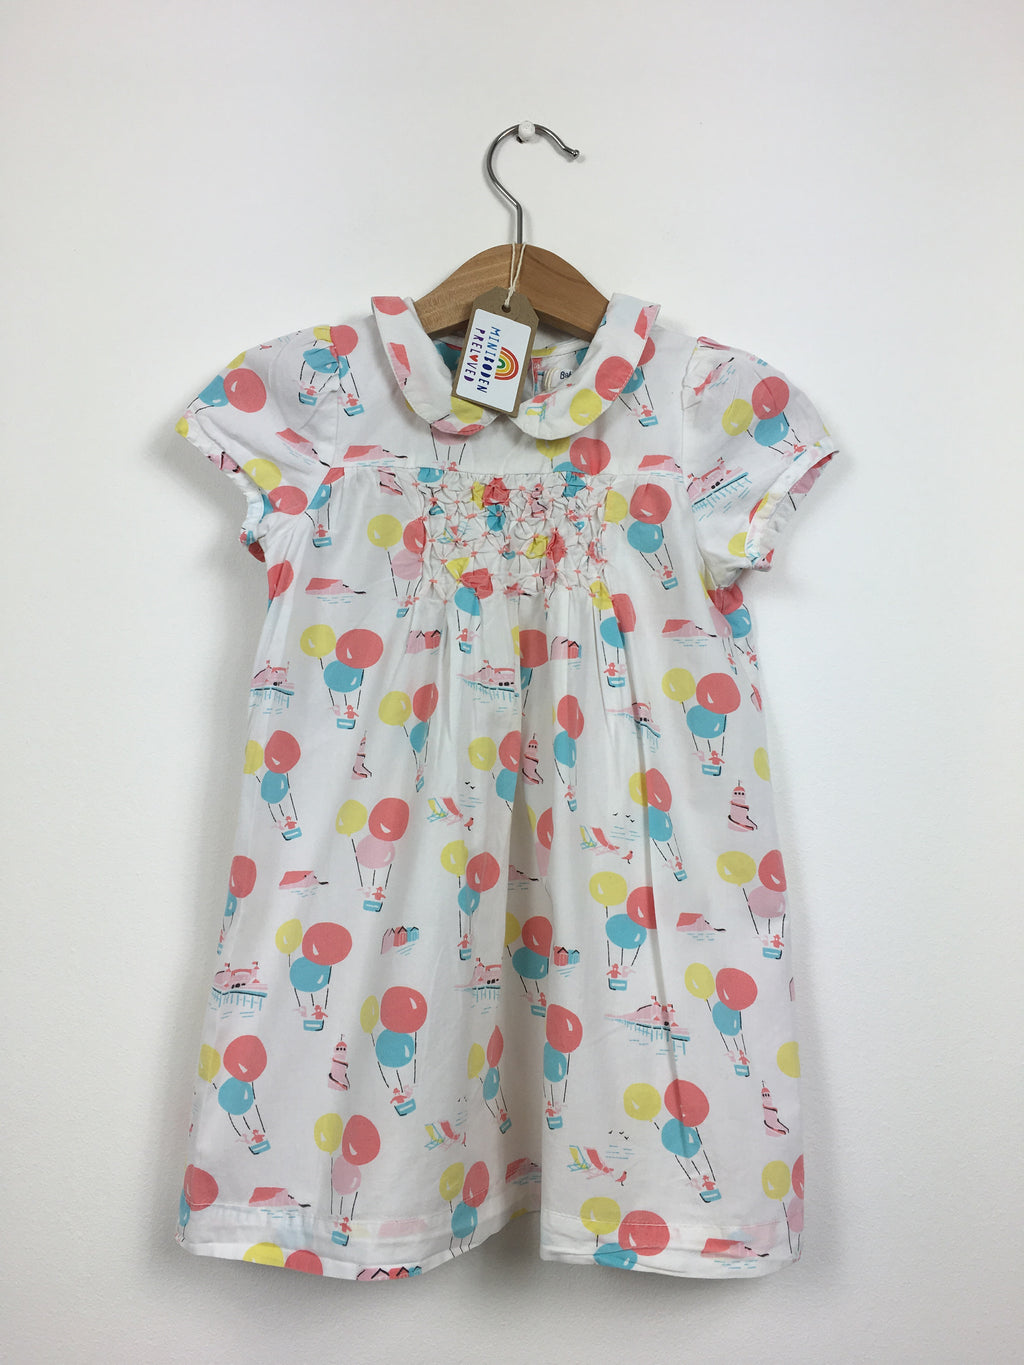 Hot Air Balloon Print Dress (12-18 Months)